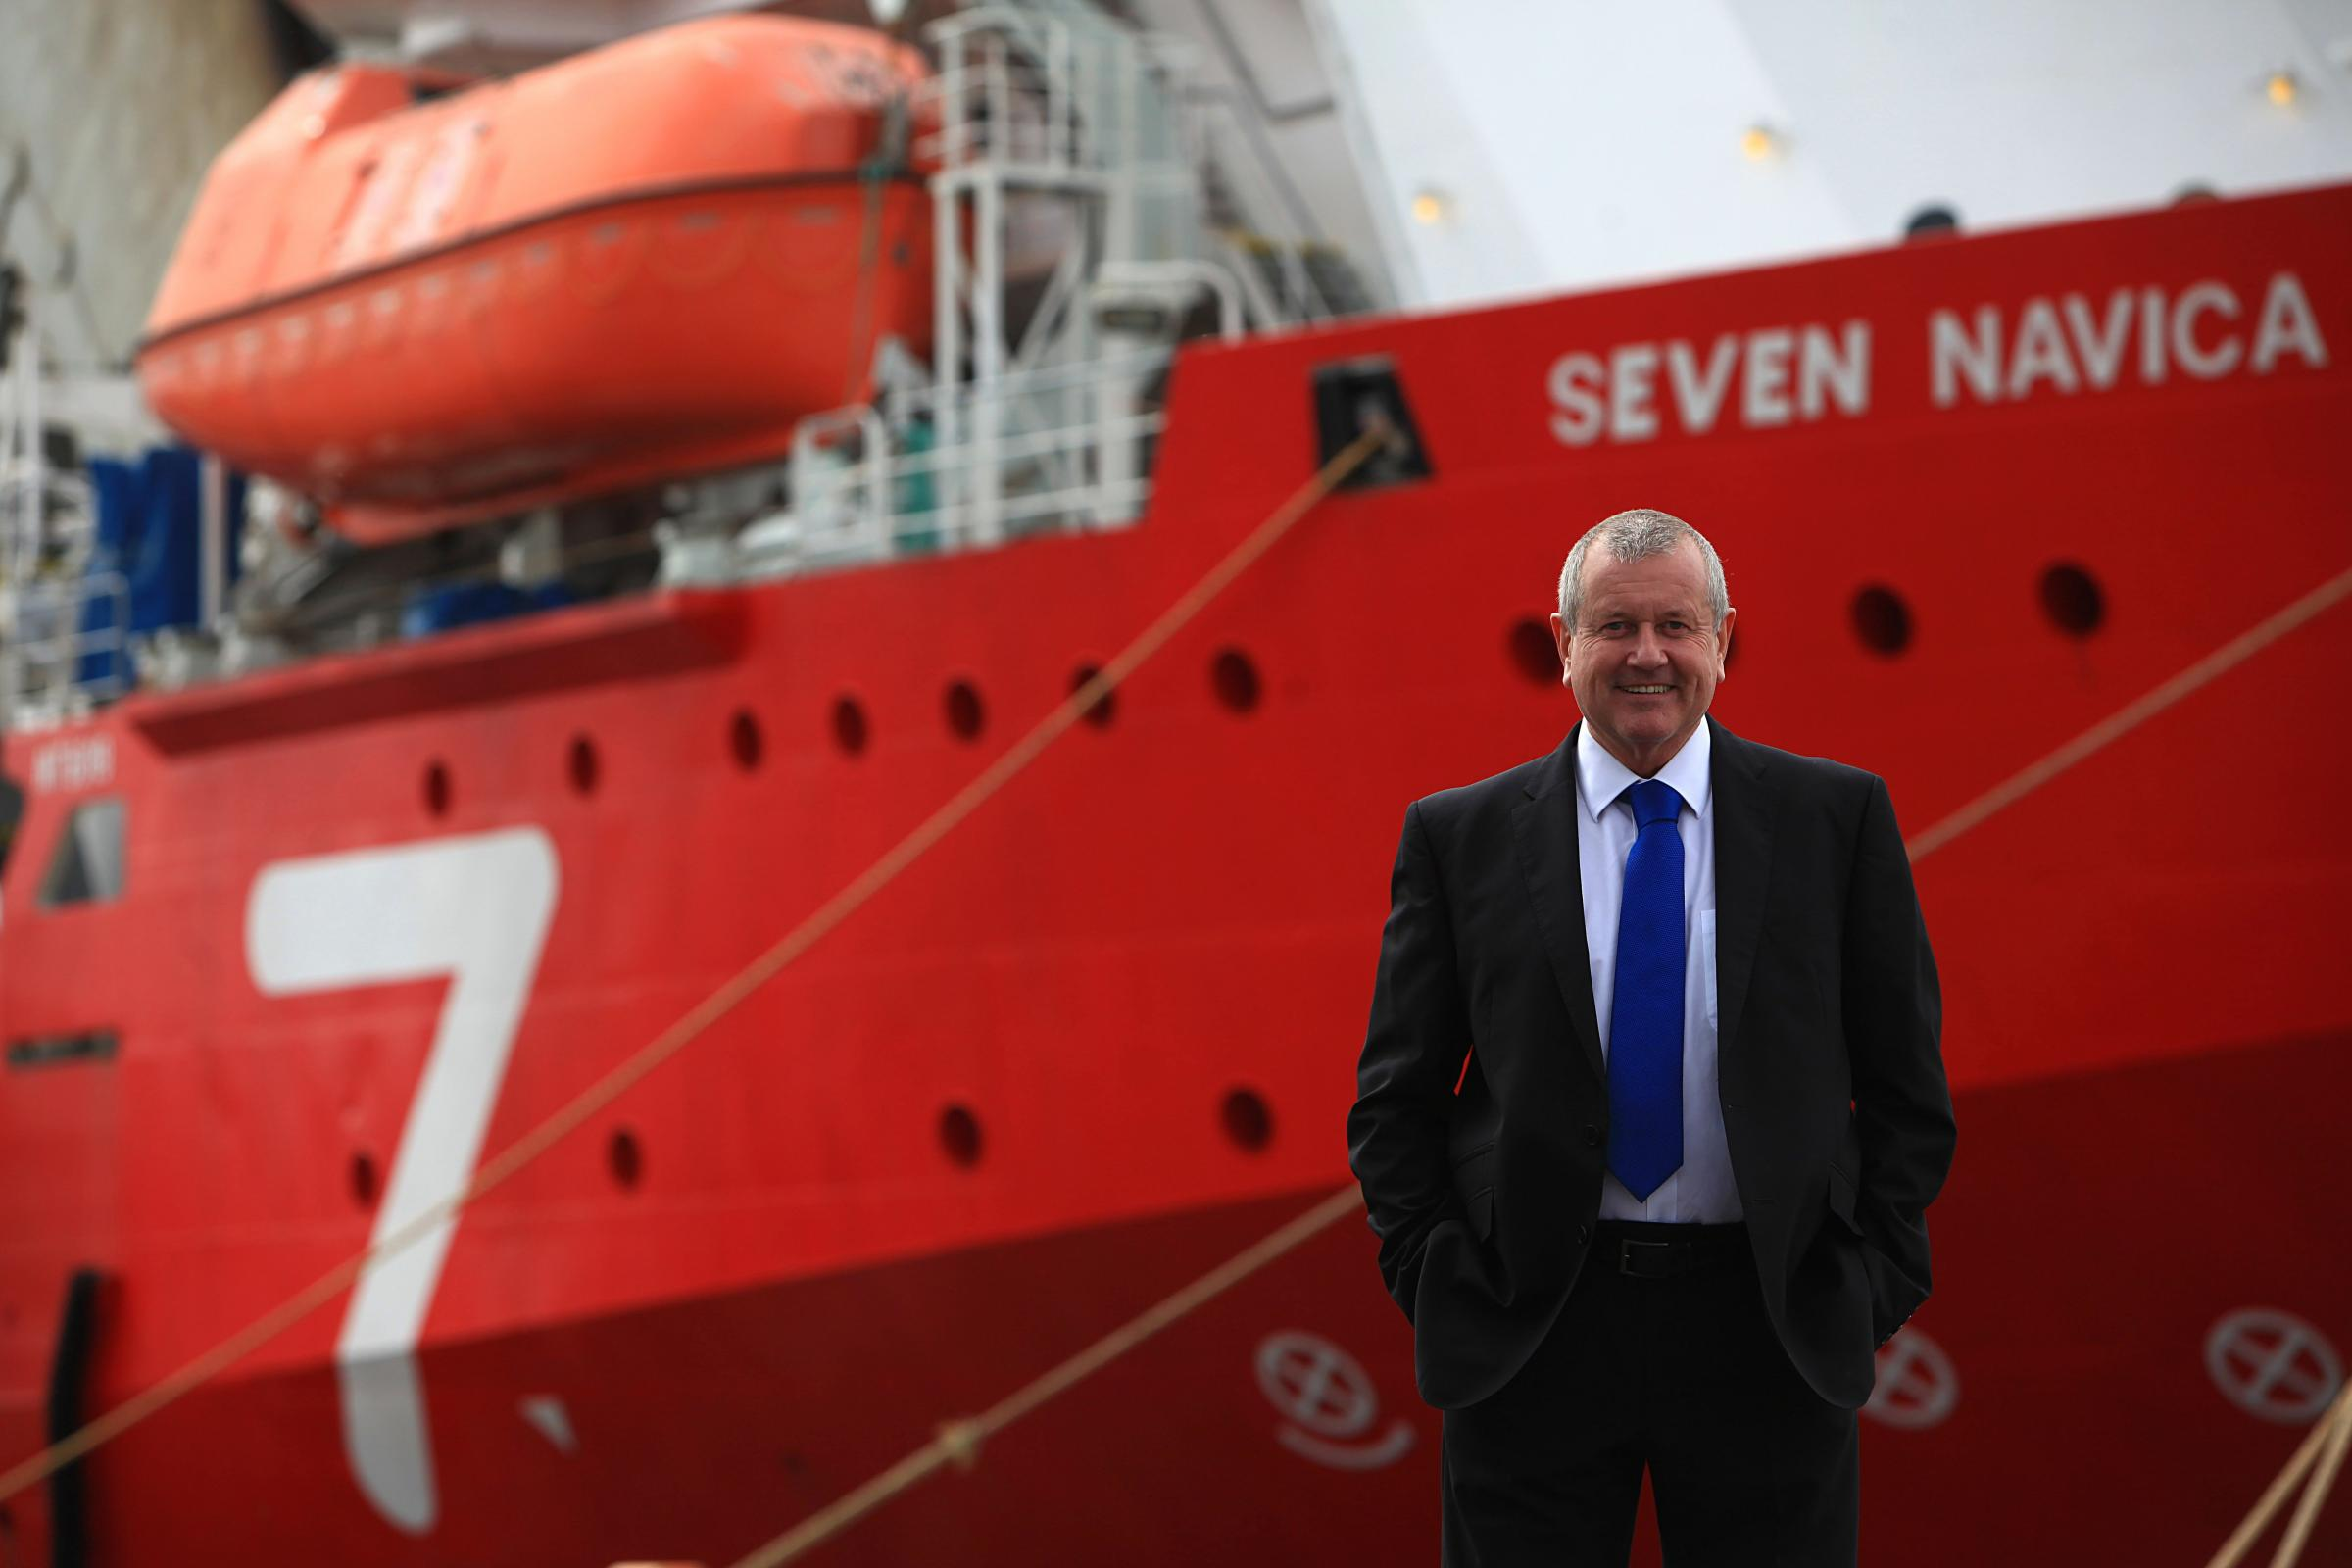 Aberdeen oil services entrepreneur says longer term outlook remains bright